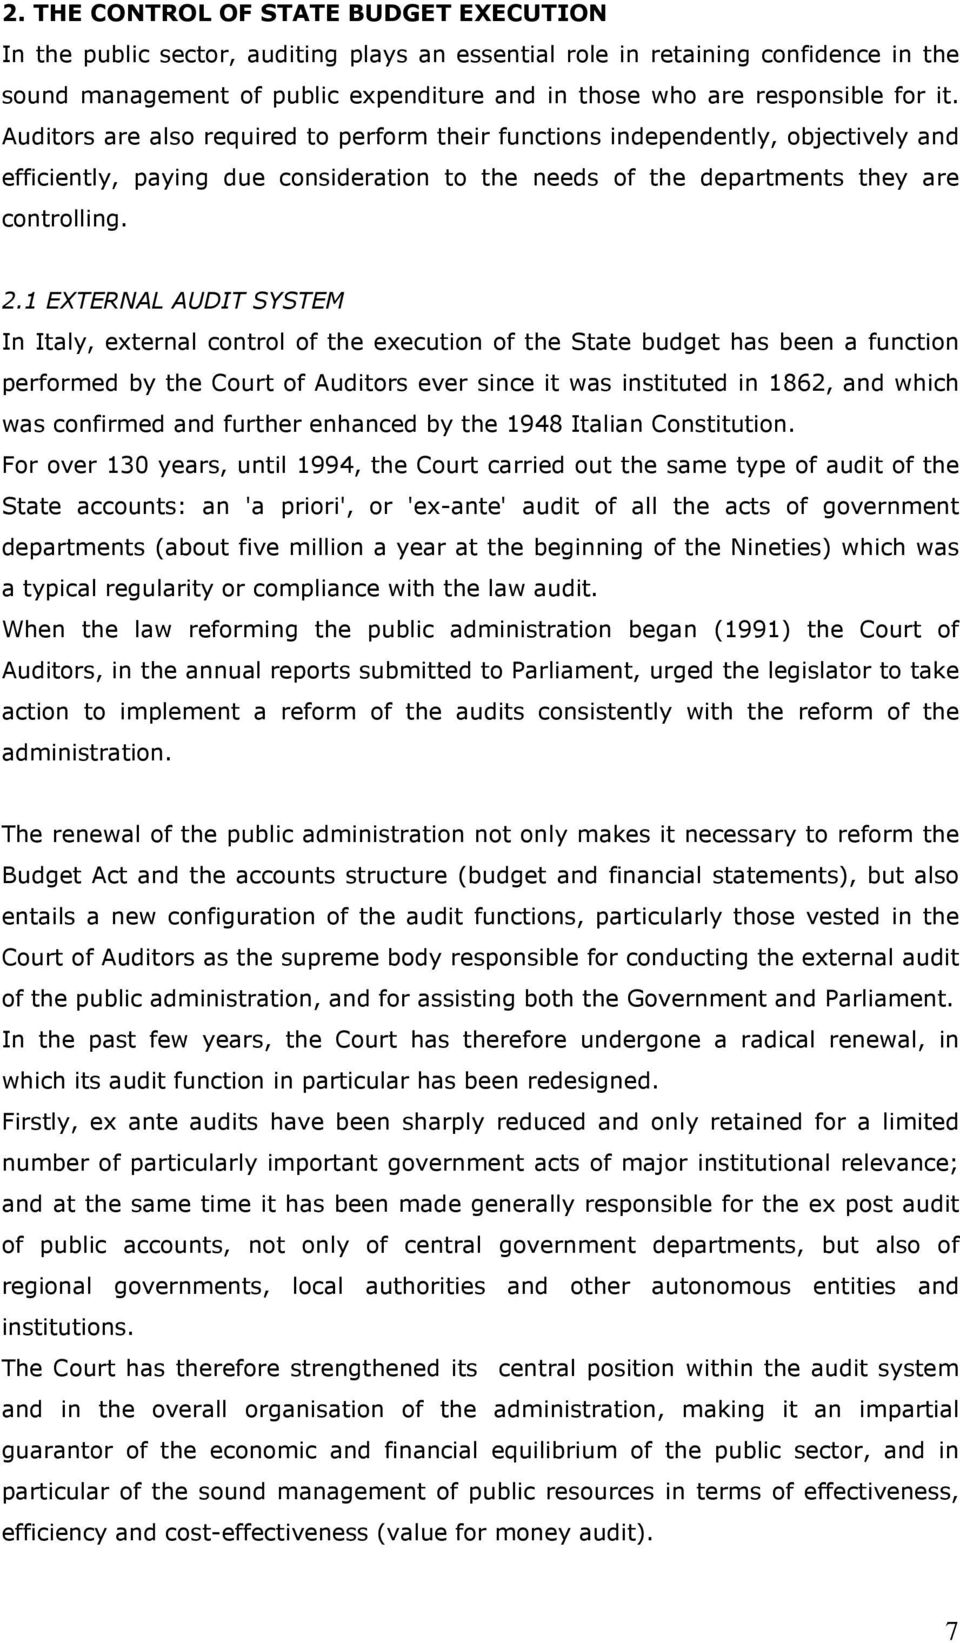 1 EXTERNAL AUDIT SYSTEM In Italy, external control of the execution of the State budget has been a function performed by the Court of Auditors ever since it was instituted in 1862, and which was